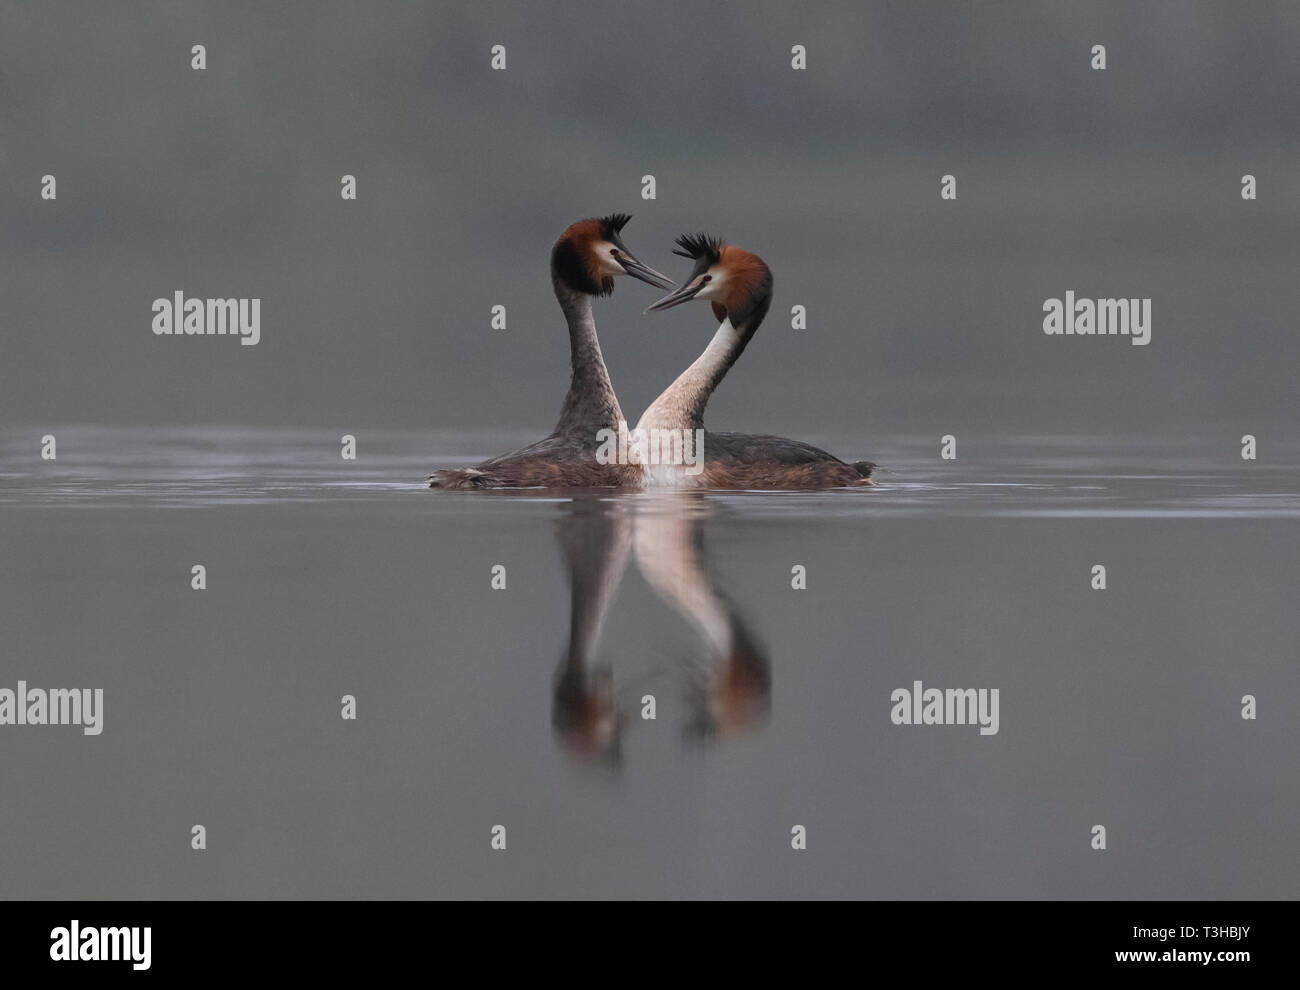 Great Crested Grebes-Podiceps cristatus display courtship. - Stock Image